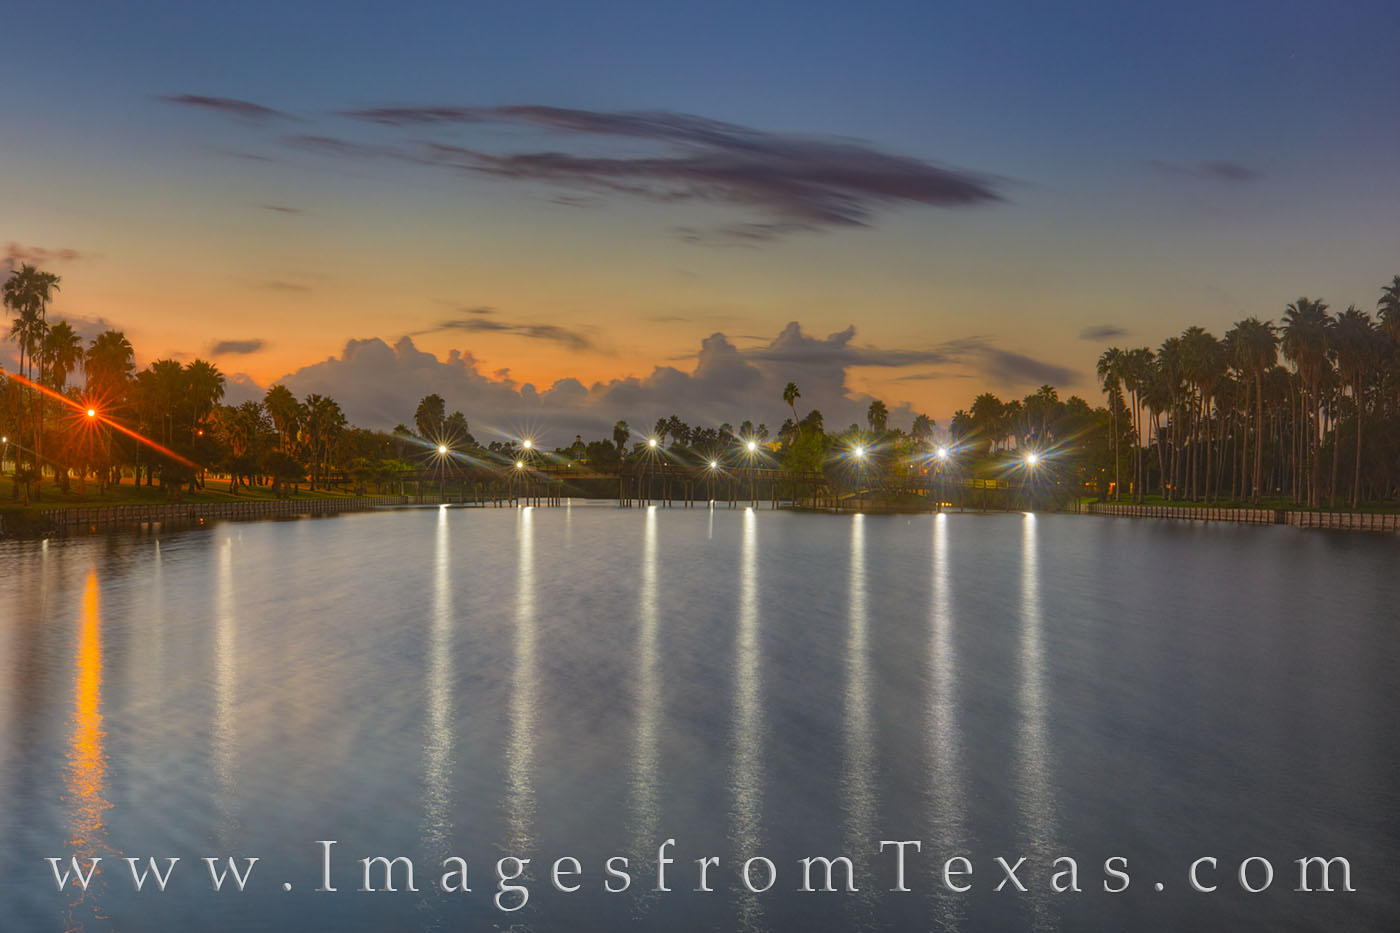 Well before sunrise, distant storm clouds over the Gulf of Mexico loom in the morning sky. This resaca in Brownsville is calm...